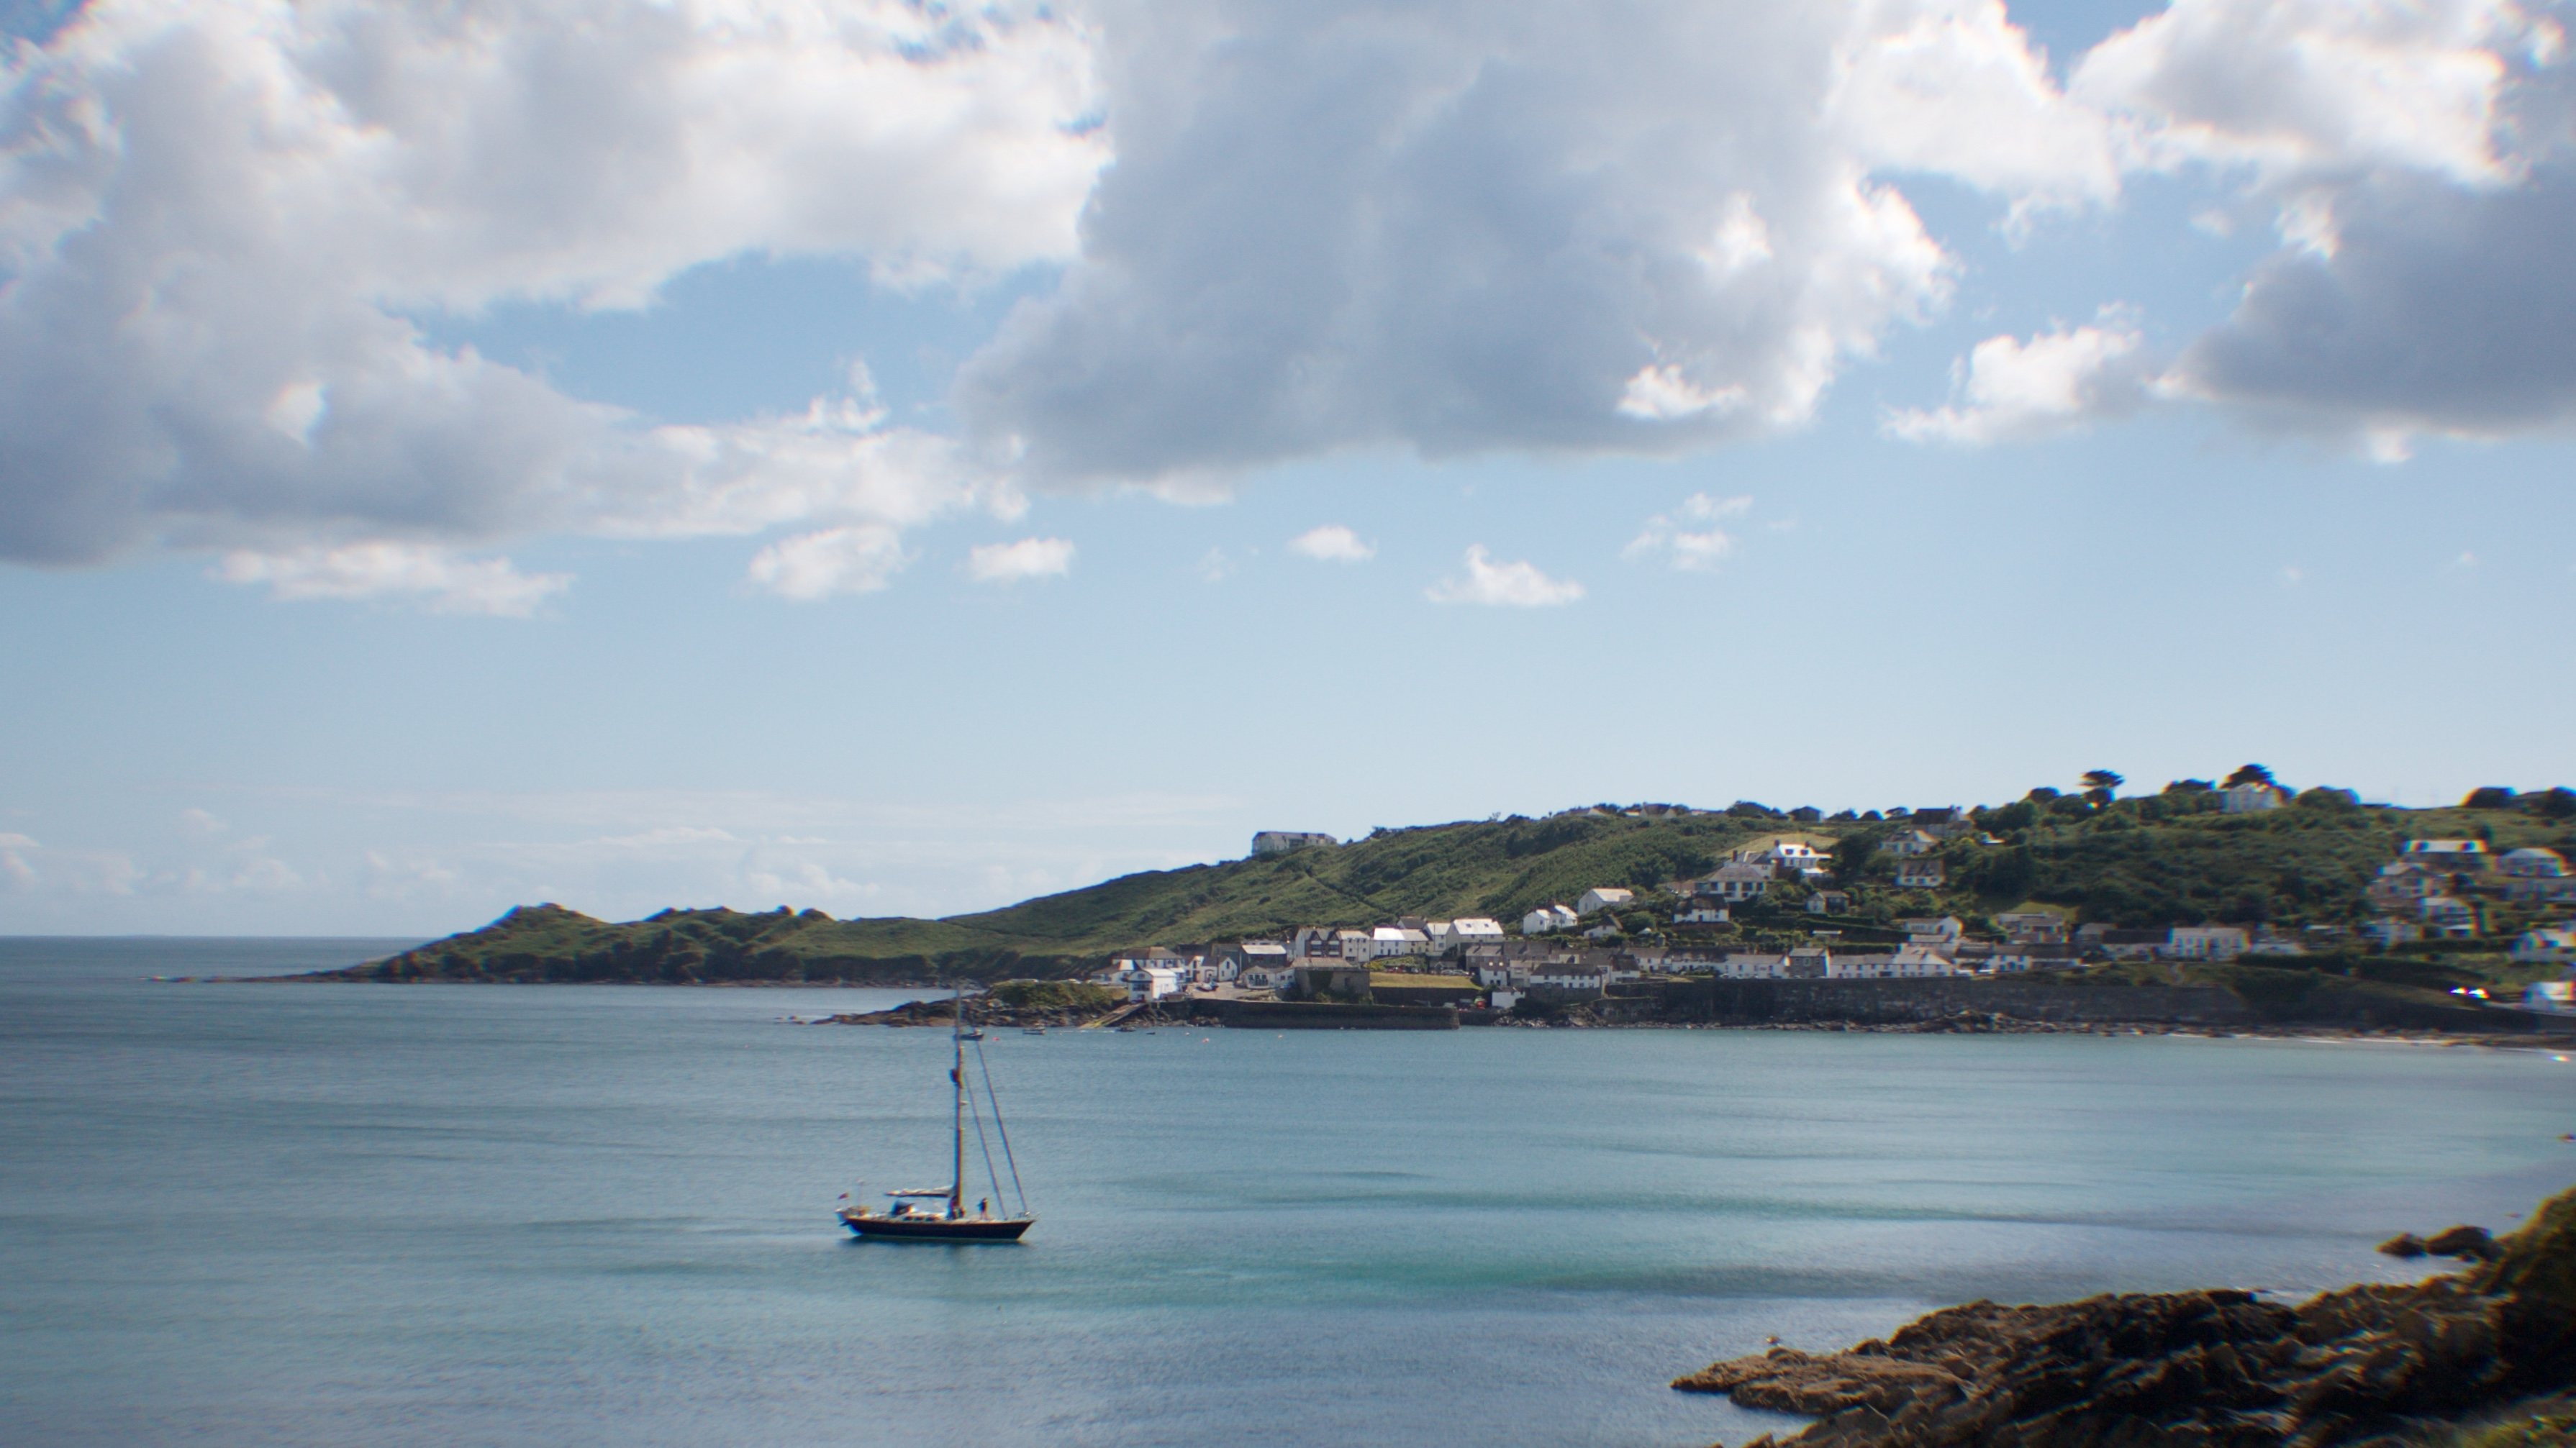 Coverack South West Coastal Path views